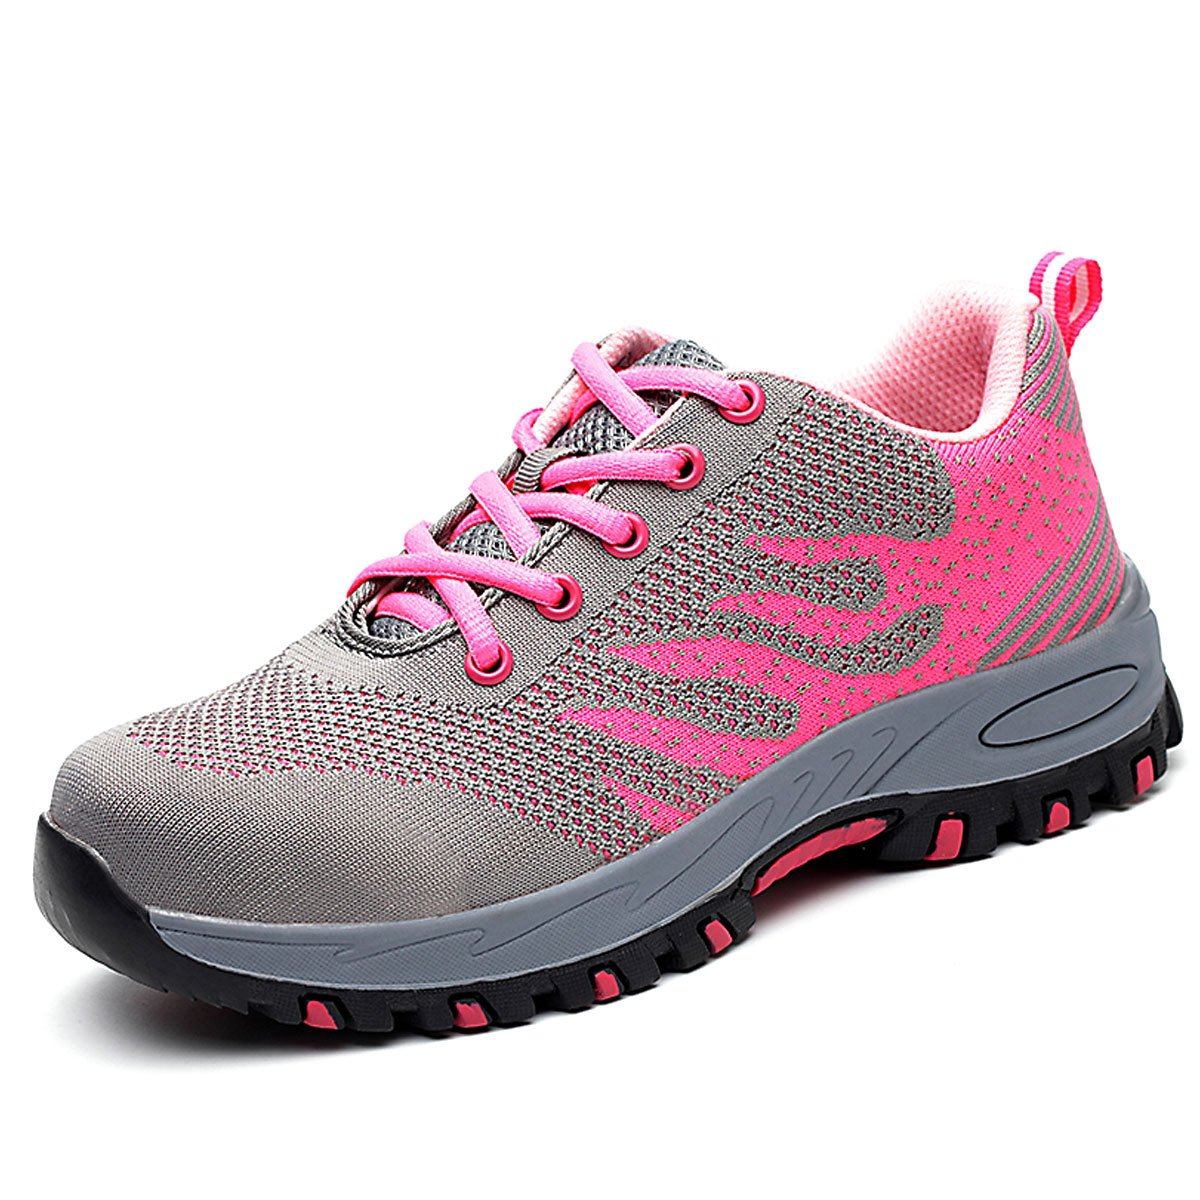 CHNHIRA Safety Shoes for Women Steel Toe Work Lady Lightweight Working Safety Shoes Trainers Sneakers ZHEJIANG CHINA HIRA SUPPLY CHAIN MANAGEMENT CO. LT